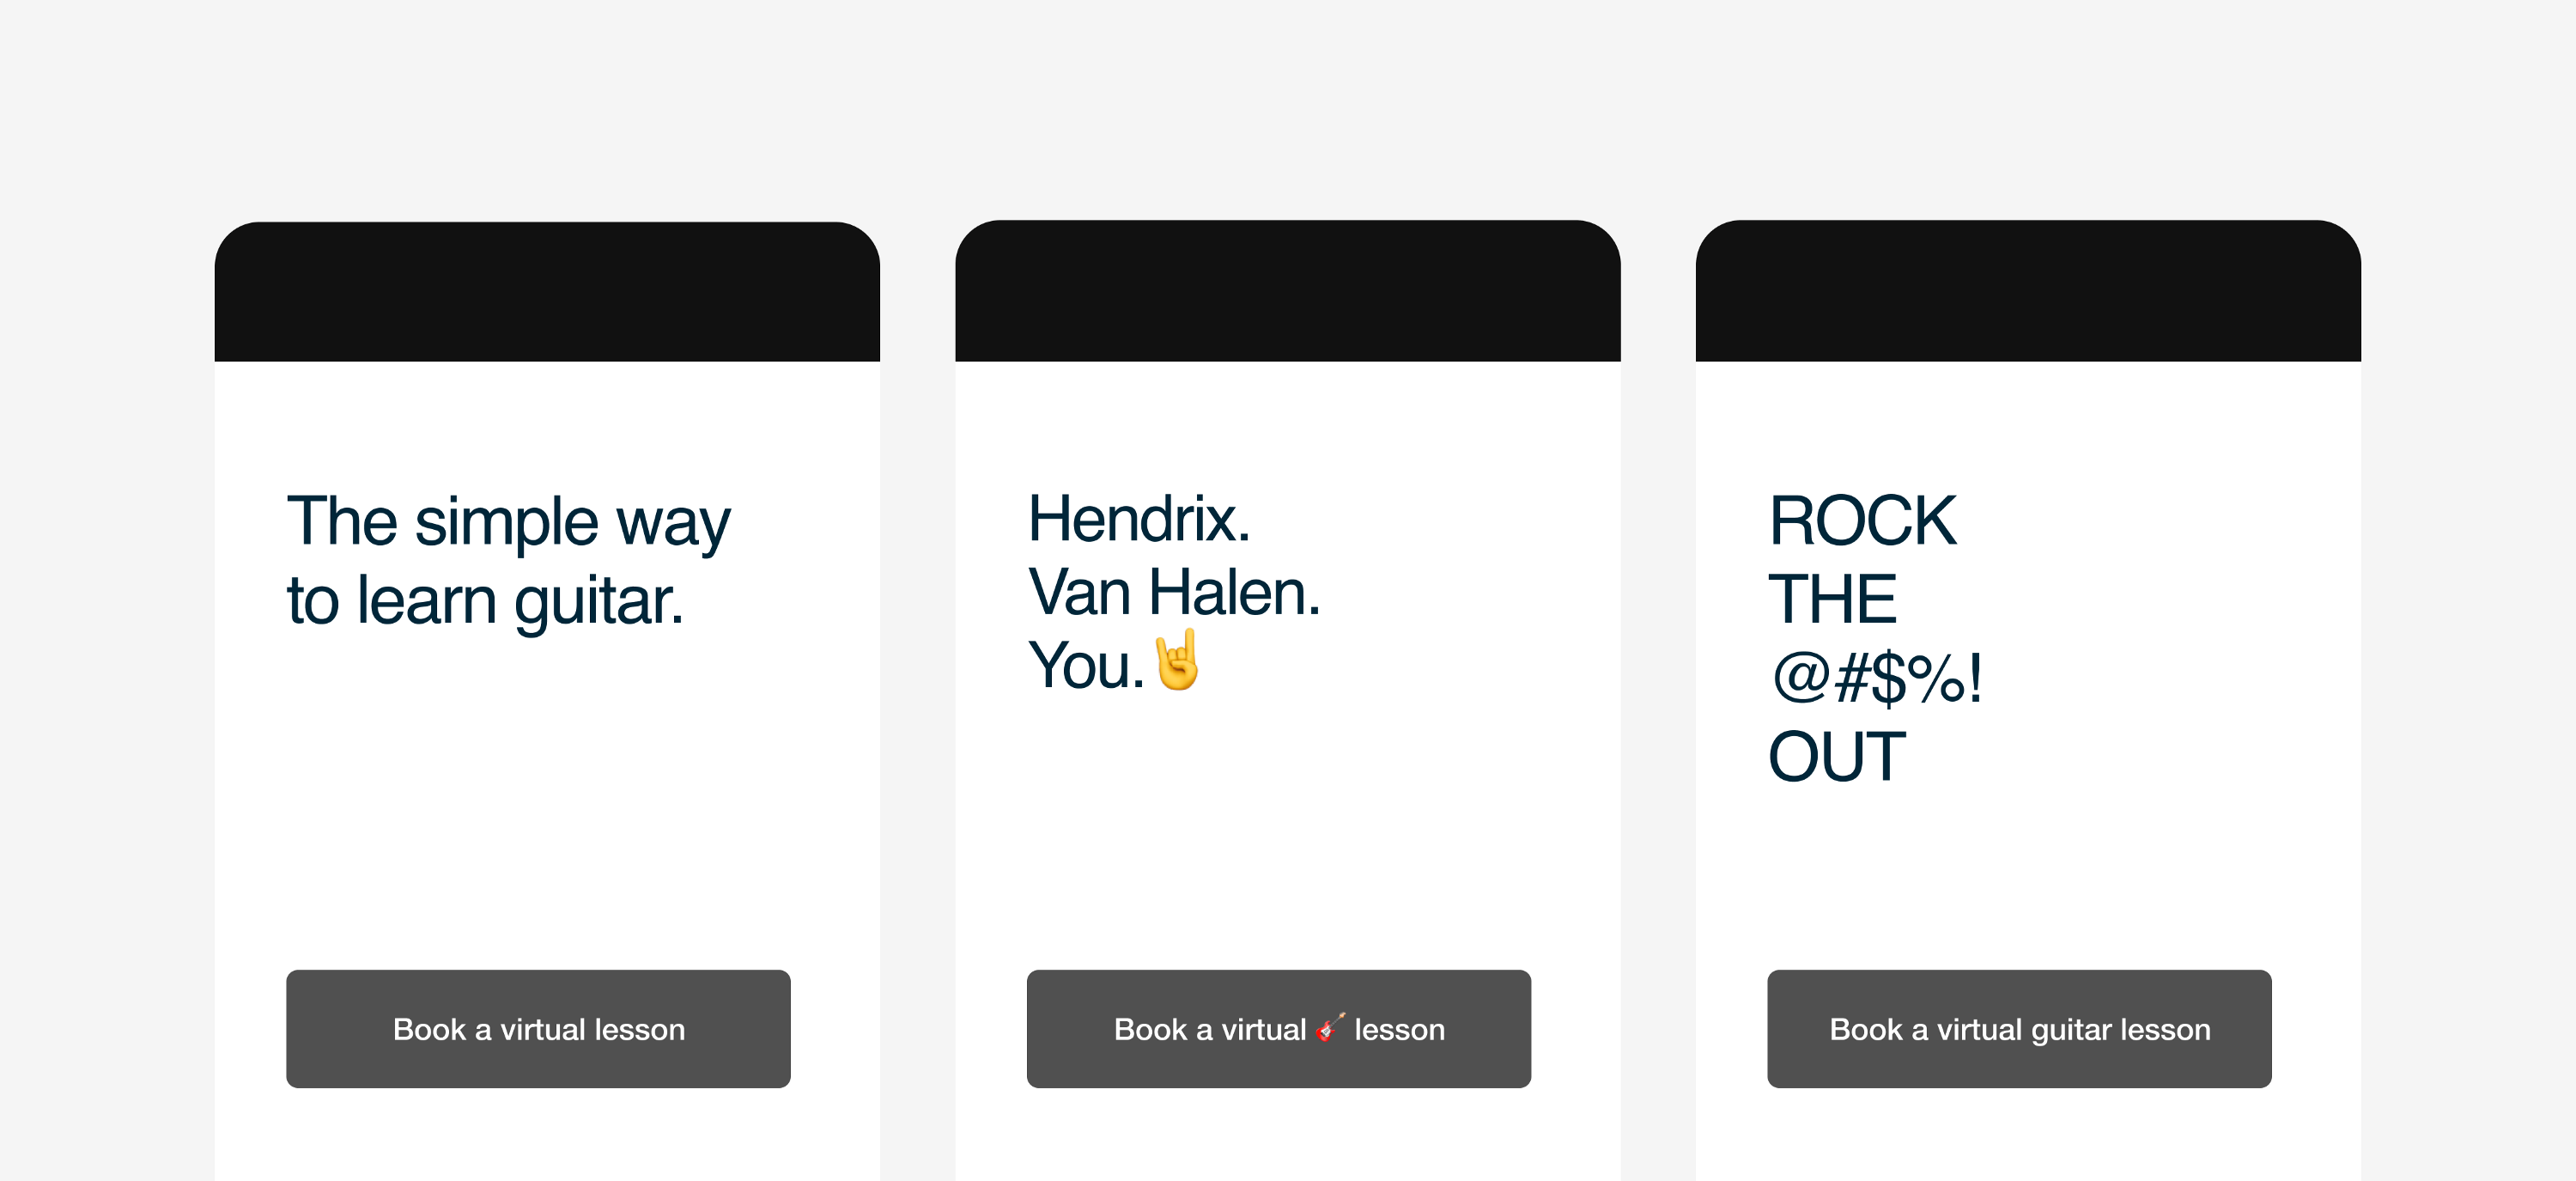 How to personalize digital products with copywriting